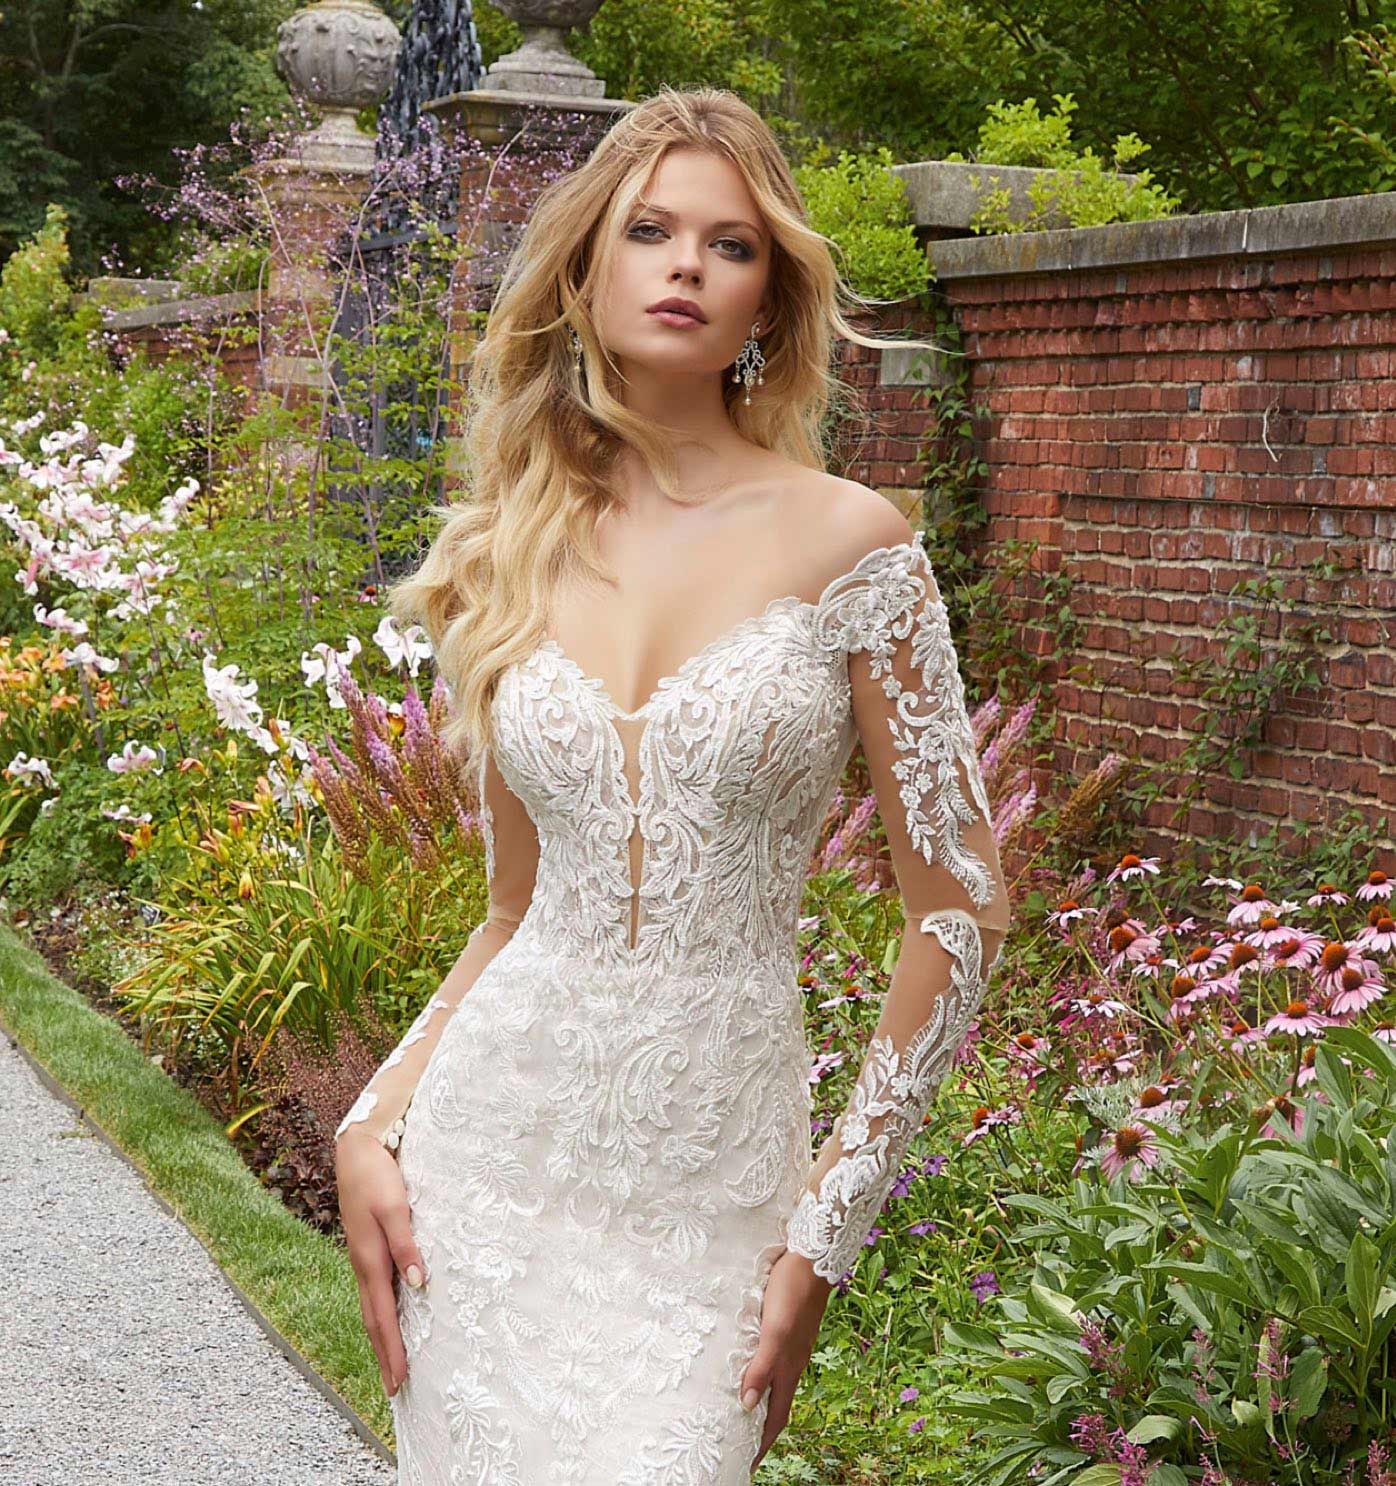 Model in wedding dress with sleeves